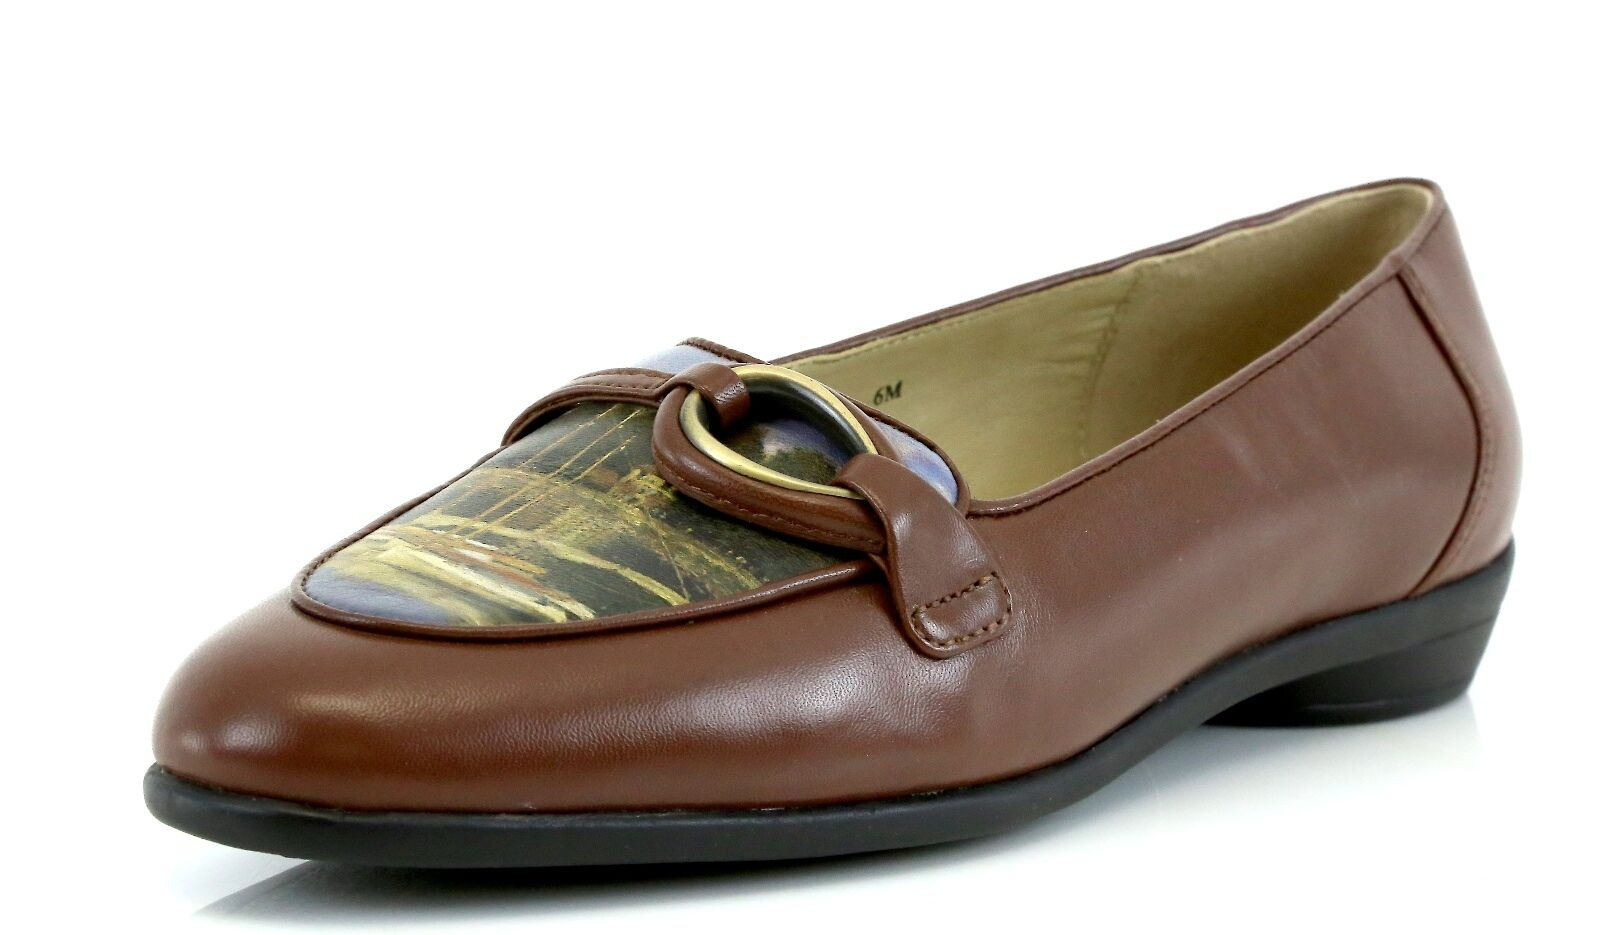 Icon THE BRIDGE Belgium Brown Pelle Loafers 7377 Size 6 M NEW!